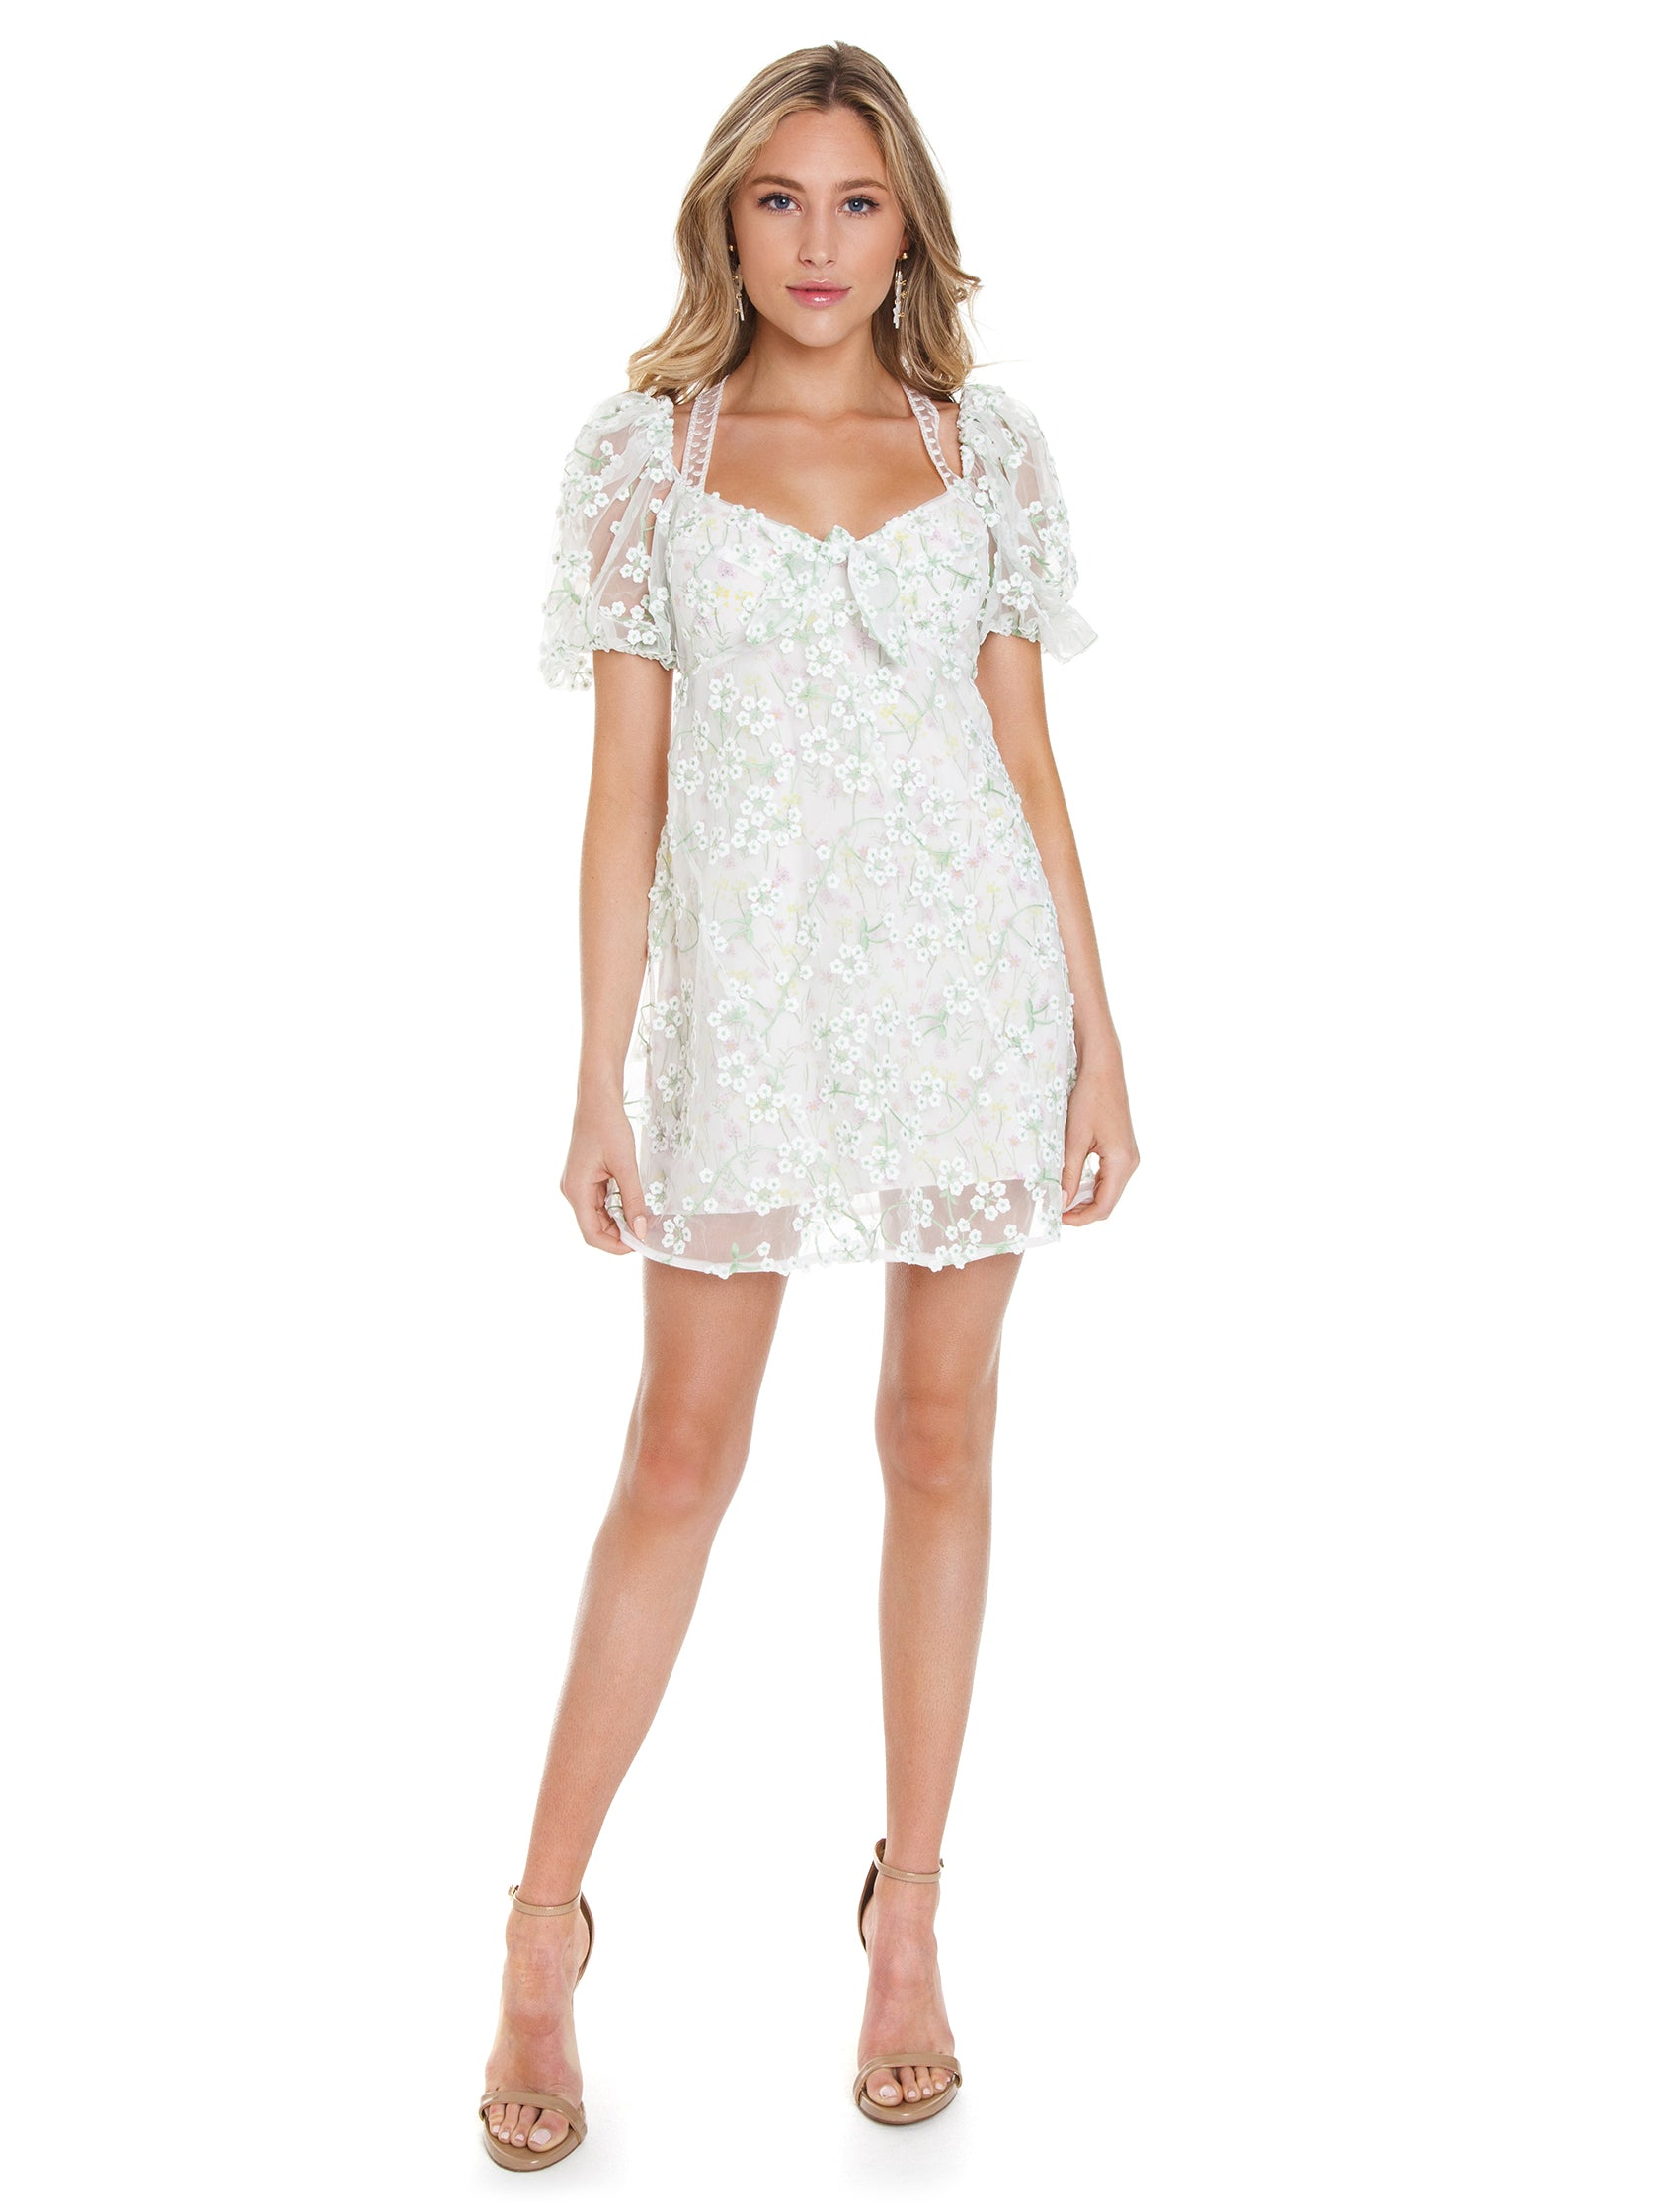 9eae9c92de60 Girl outfit in a dress rental from For Love & Lemons called Eclair Mini  Dress